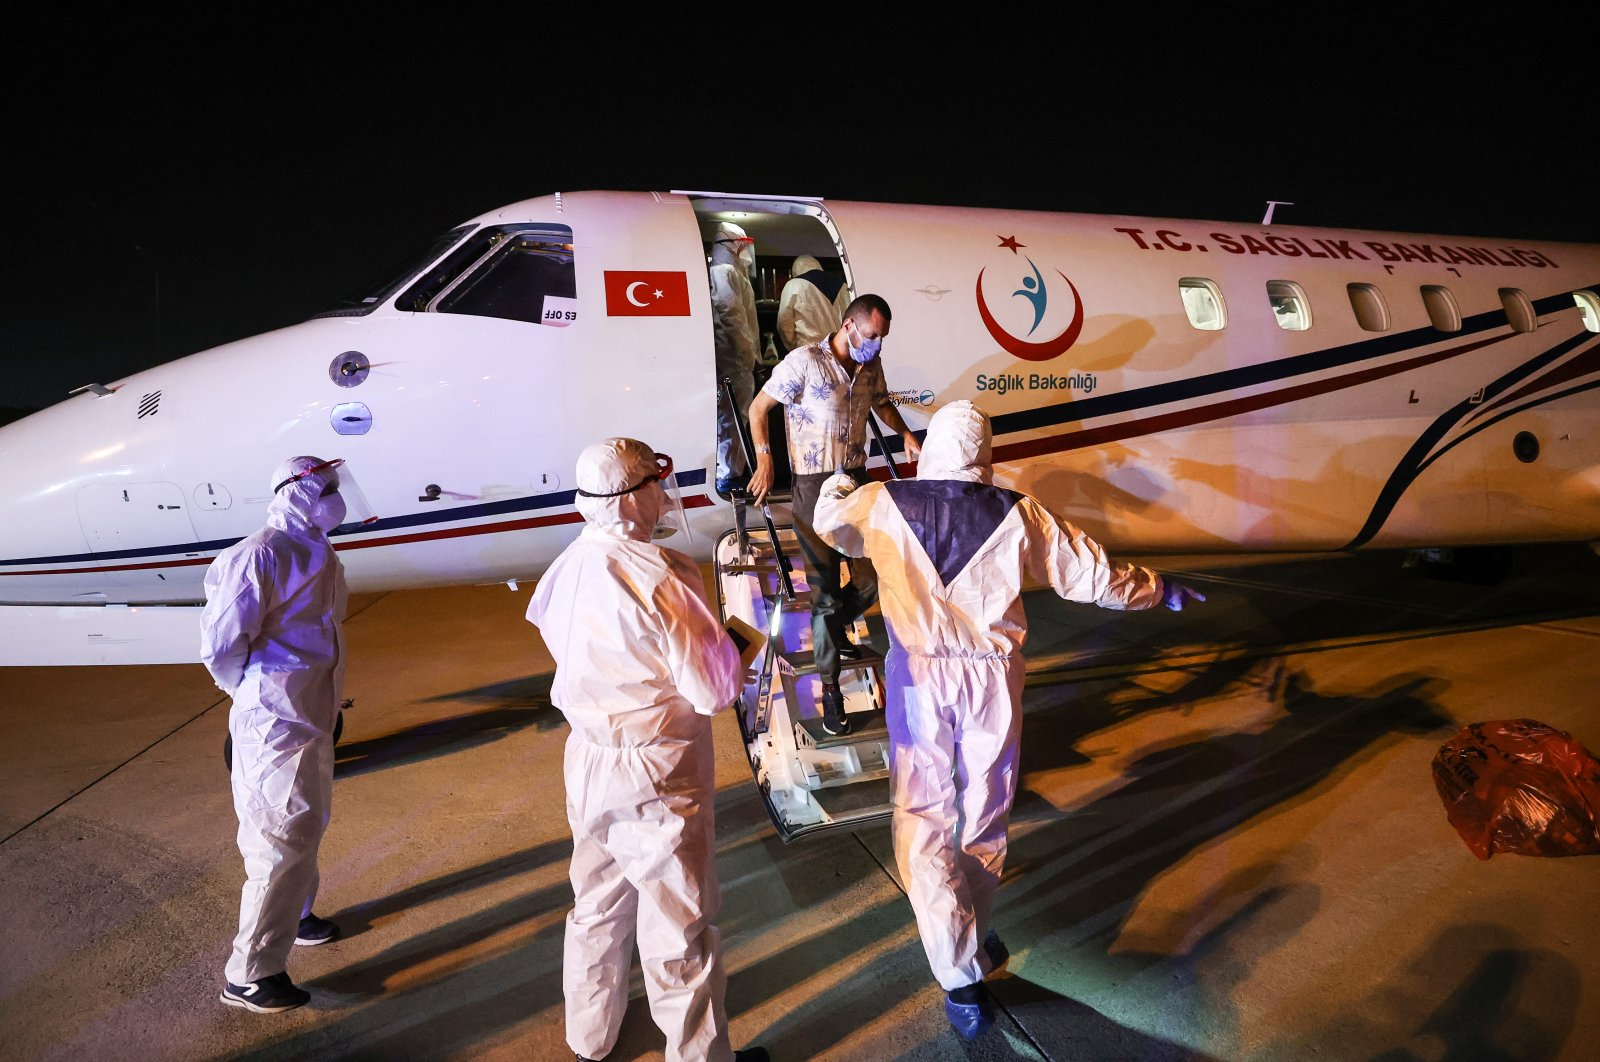 Health care workers accompany a patient as he disembarks an air ambulance, in Istanbul, Turkey, Feb. 23, 2021. (AA Photo)